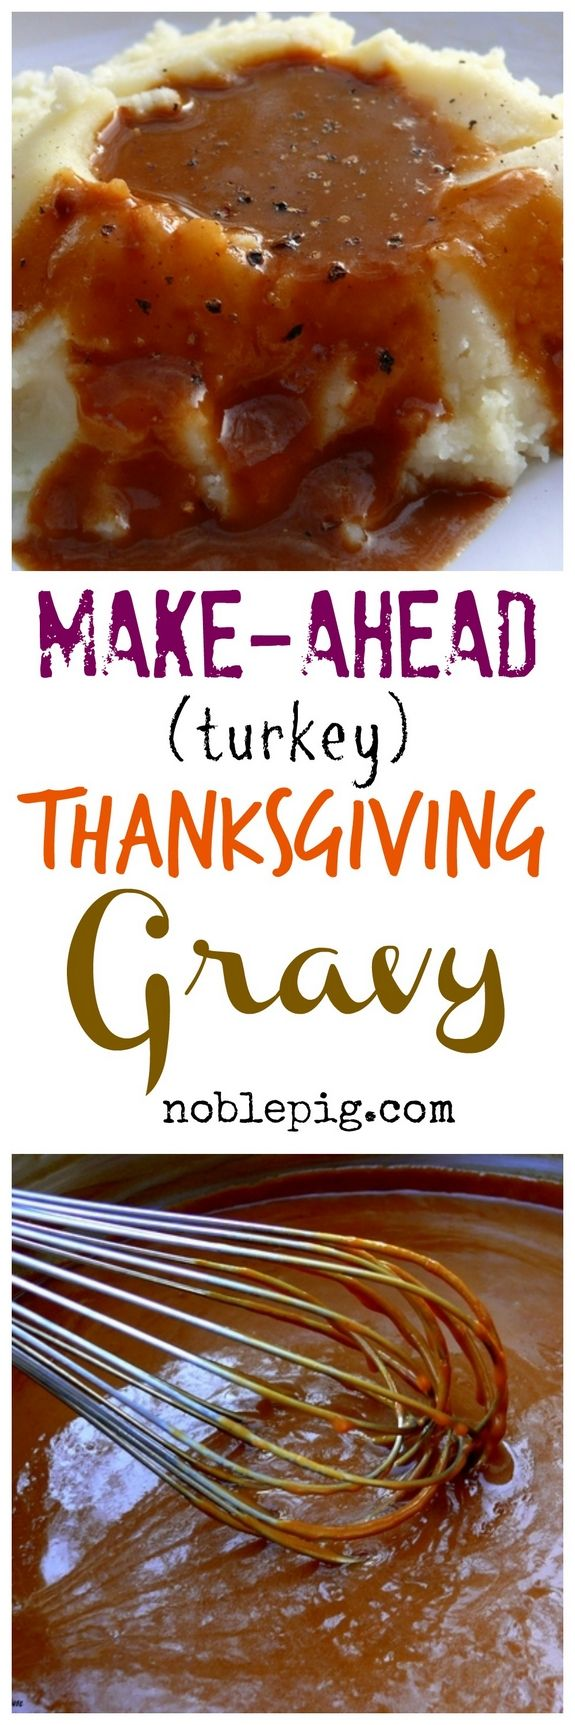 Make Ahead Turkey (Thanksgiving) Gravy, from NoblePig.com.